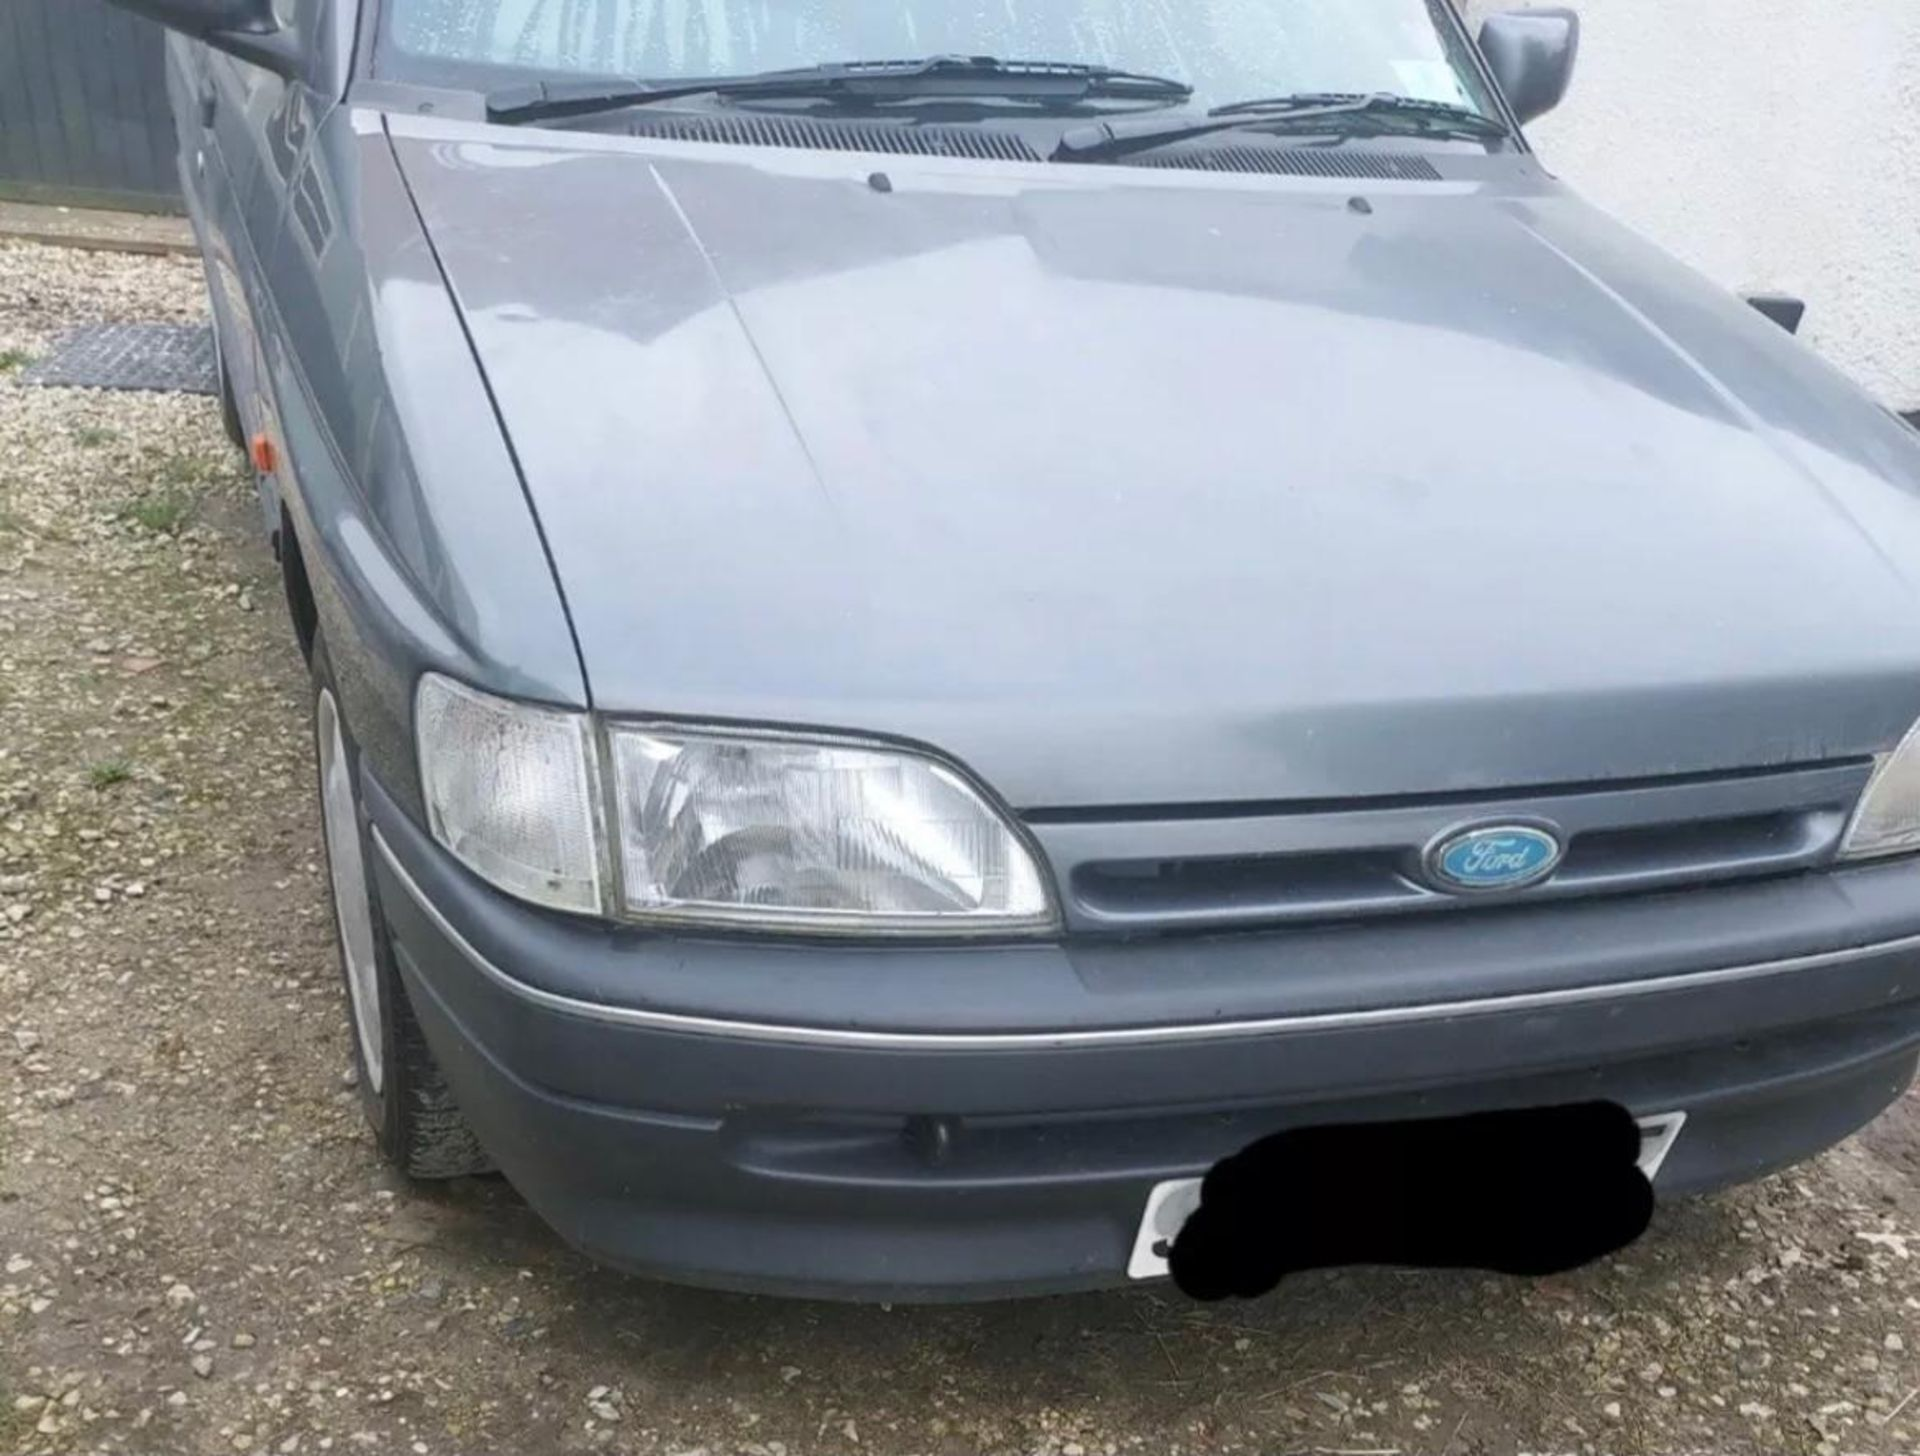 1992 FORD ORION LX AUTO, GREY, PETROL, AUTO VARIABLE 1 GEARS, 4 PREVIOUS KEEPERS, NO VAT - Image 4 of 8